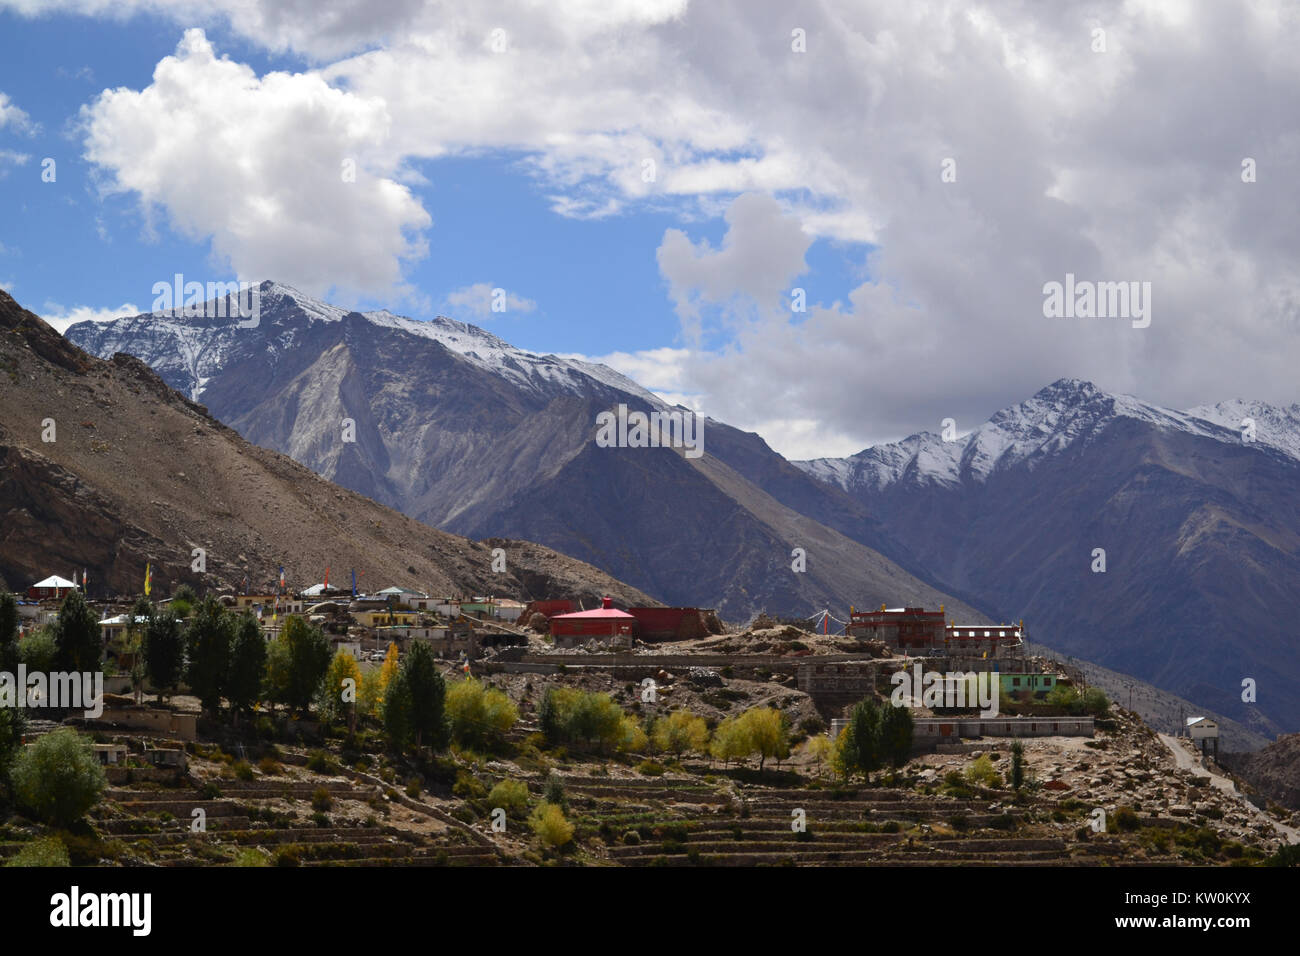 A view of the mountain village of Nako. Himachal Pradesh - Stock Image